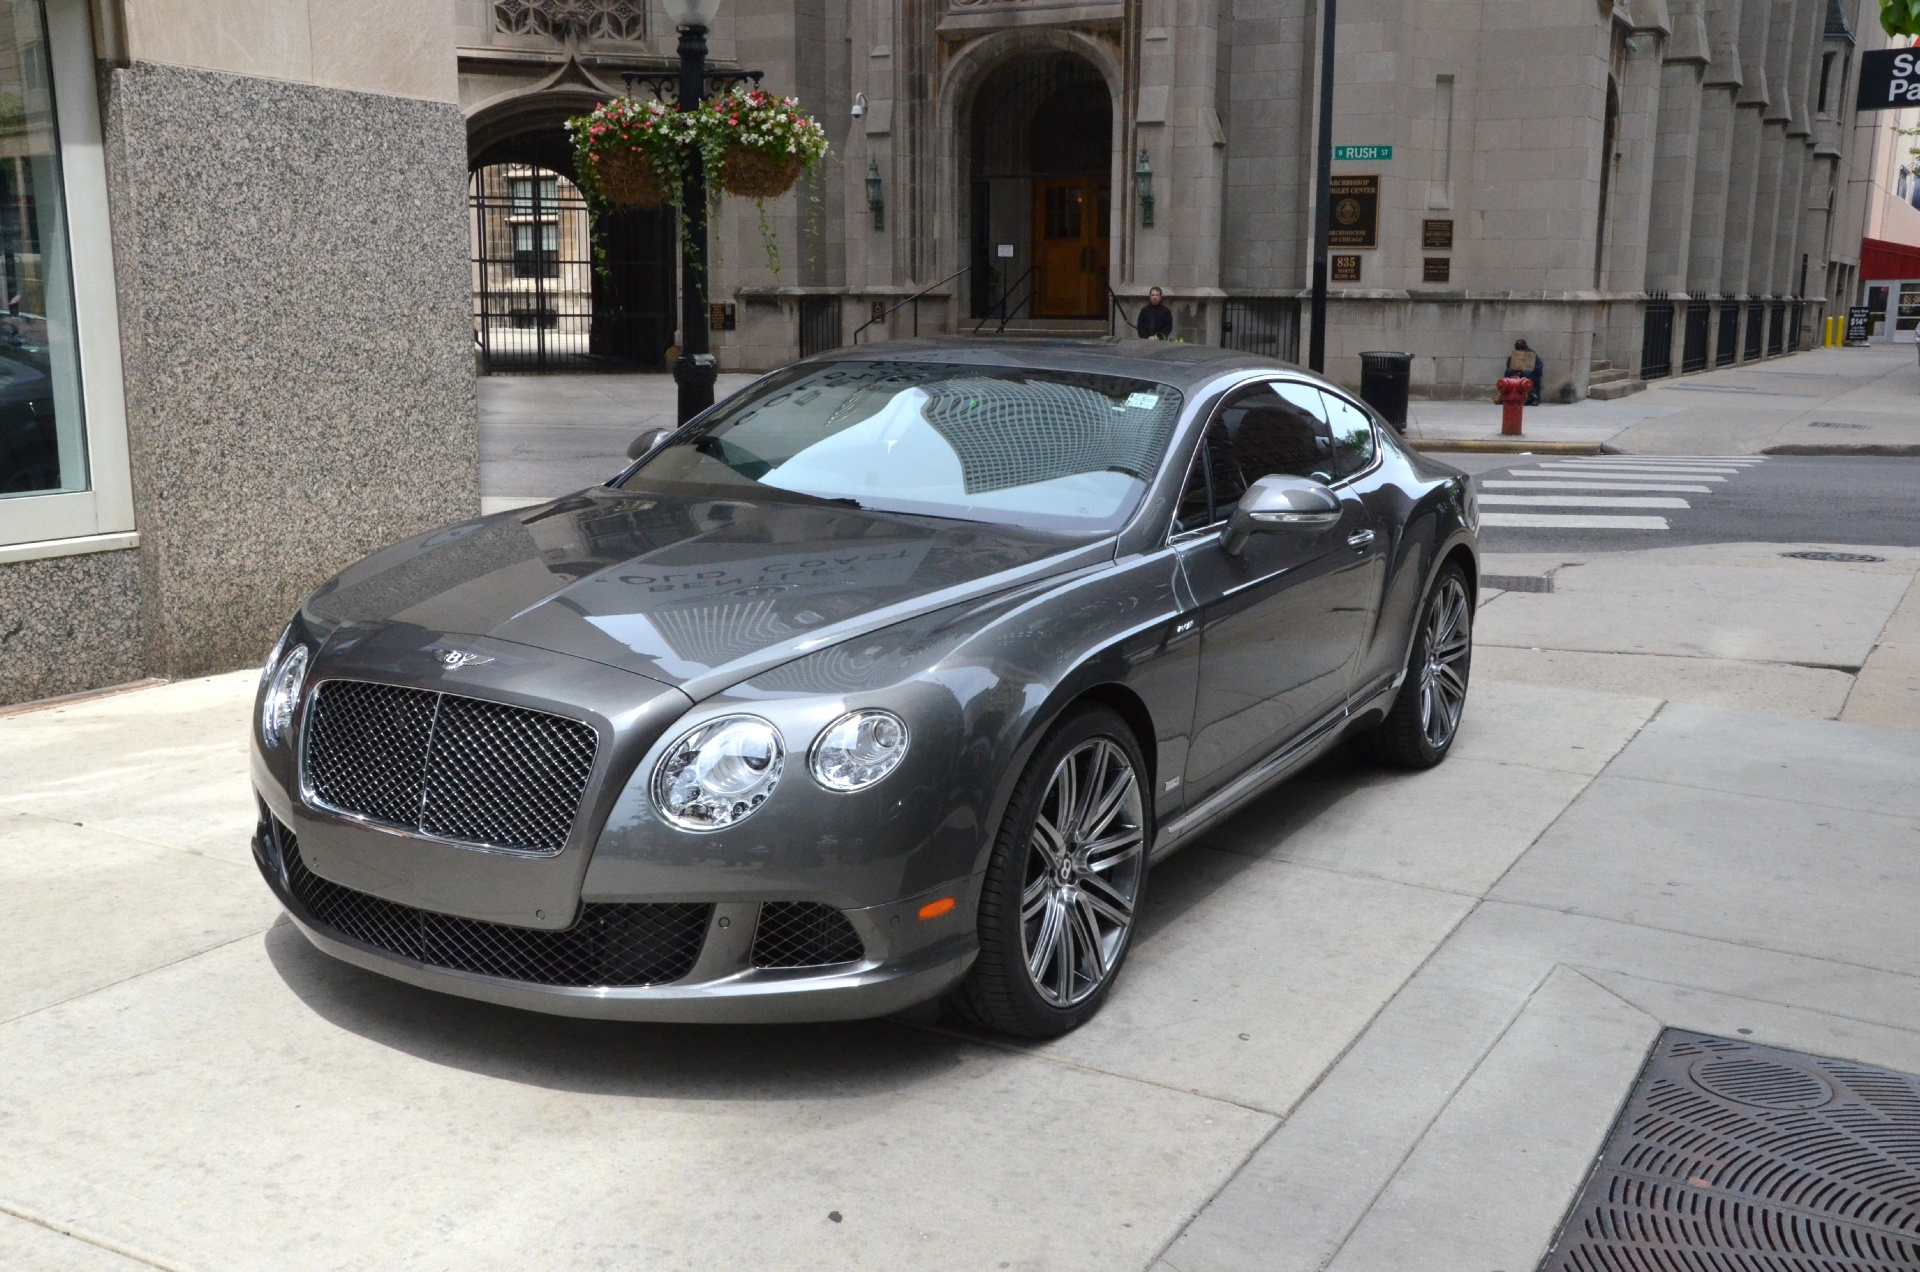 2013 bentley continental gt speed used bentley used for Gold coast bentley luxury motors